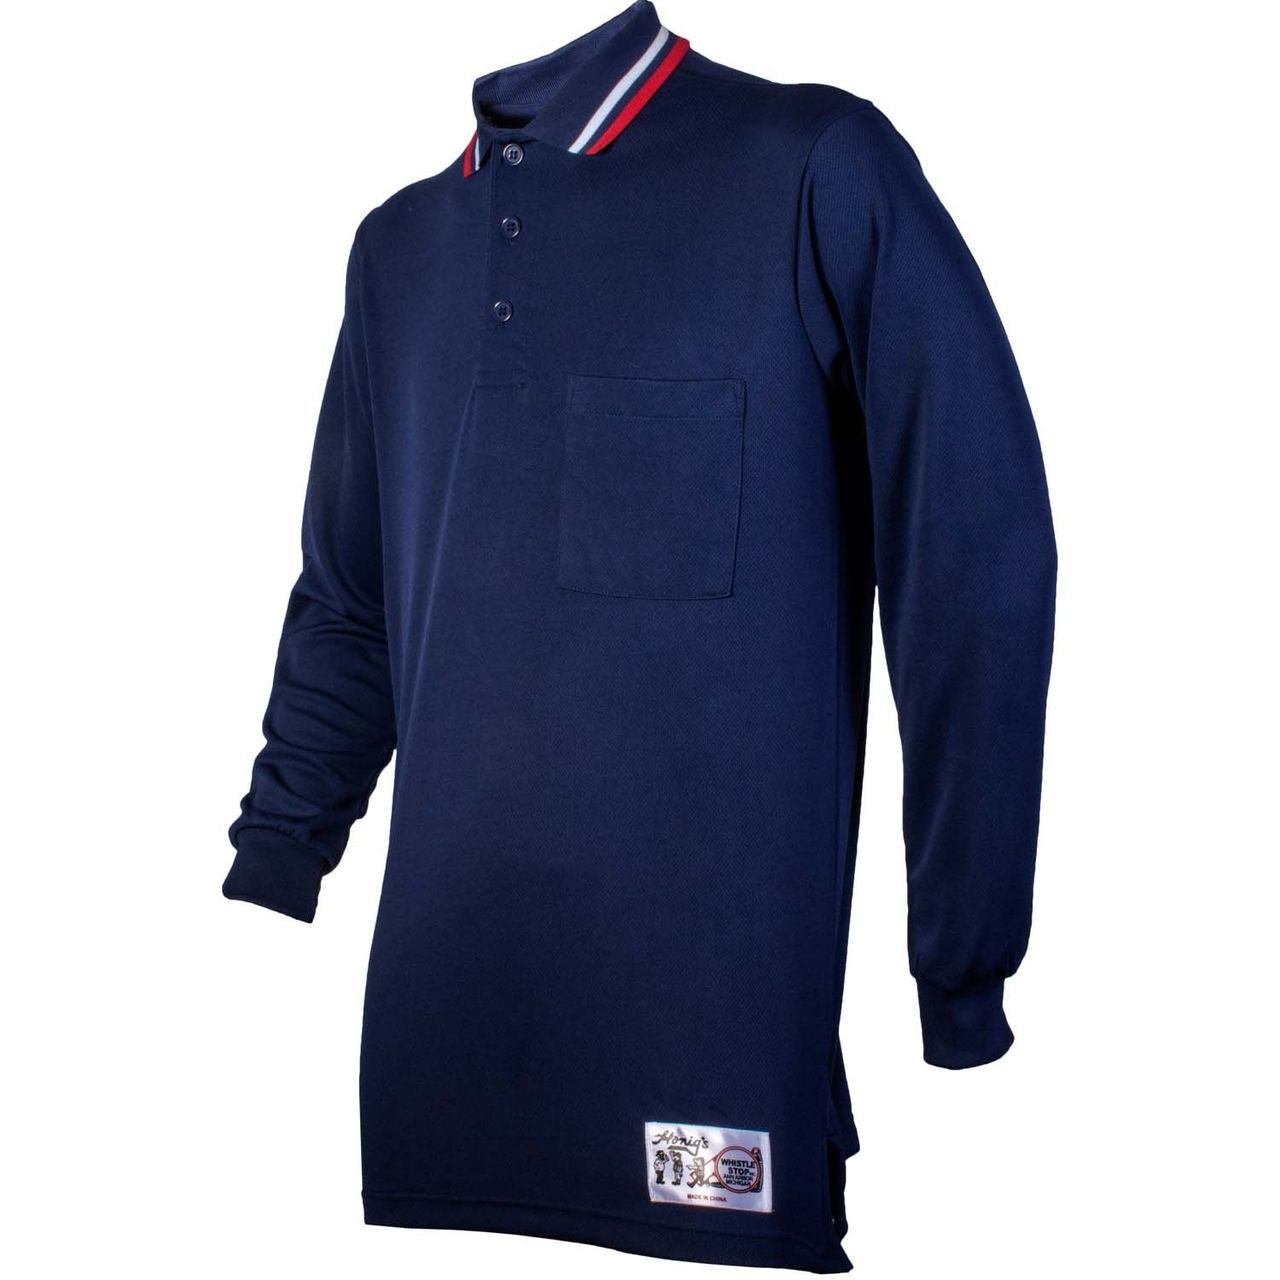 Honig's Navy Blue Long Sleeve Umpire Shirt